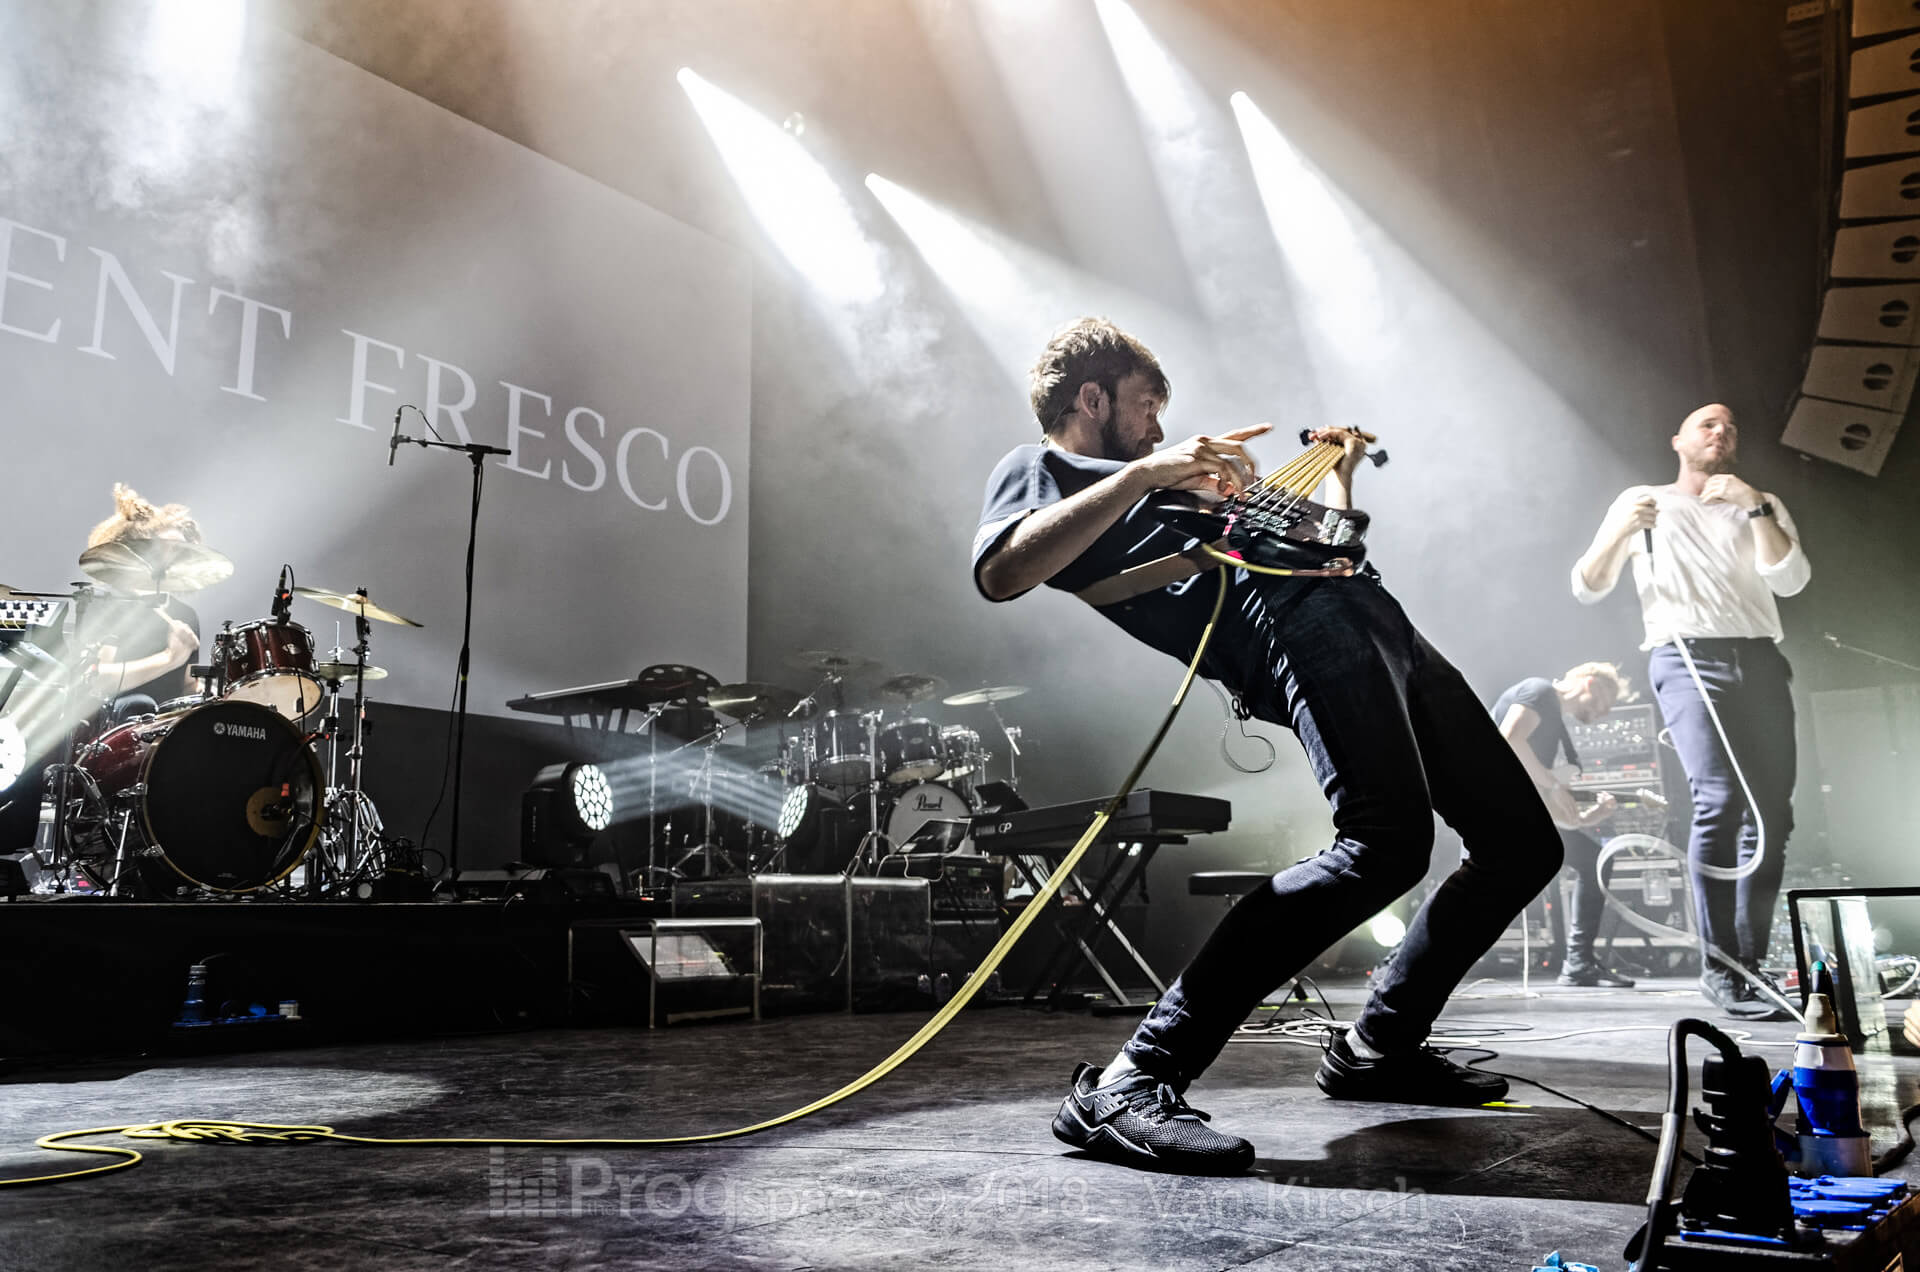 Agent Fresco live in Eindhoven – September 20, 2018